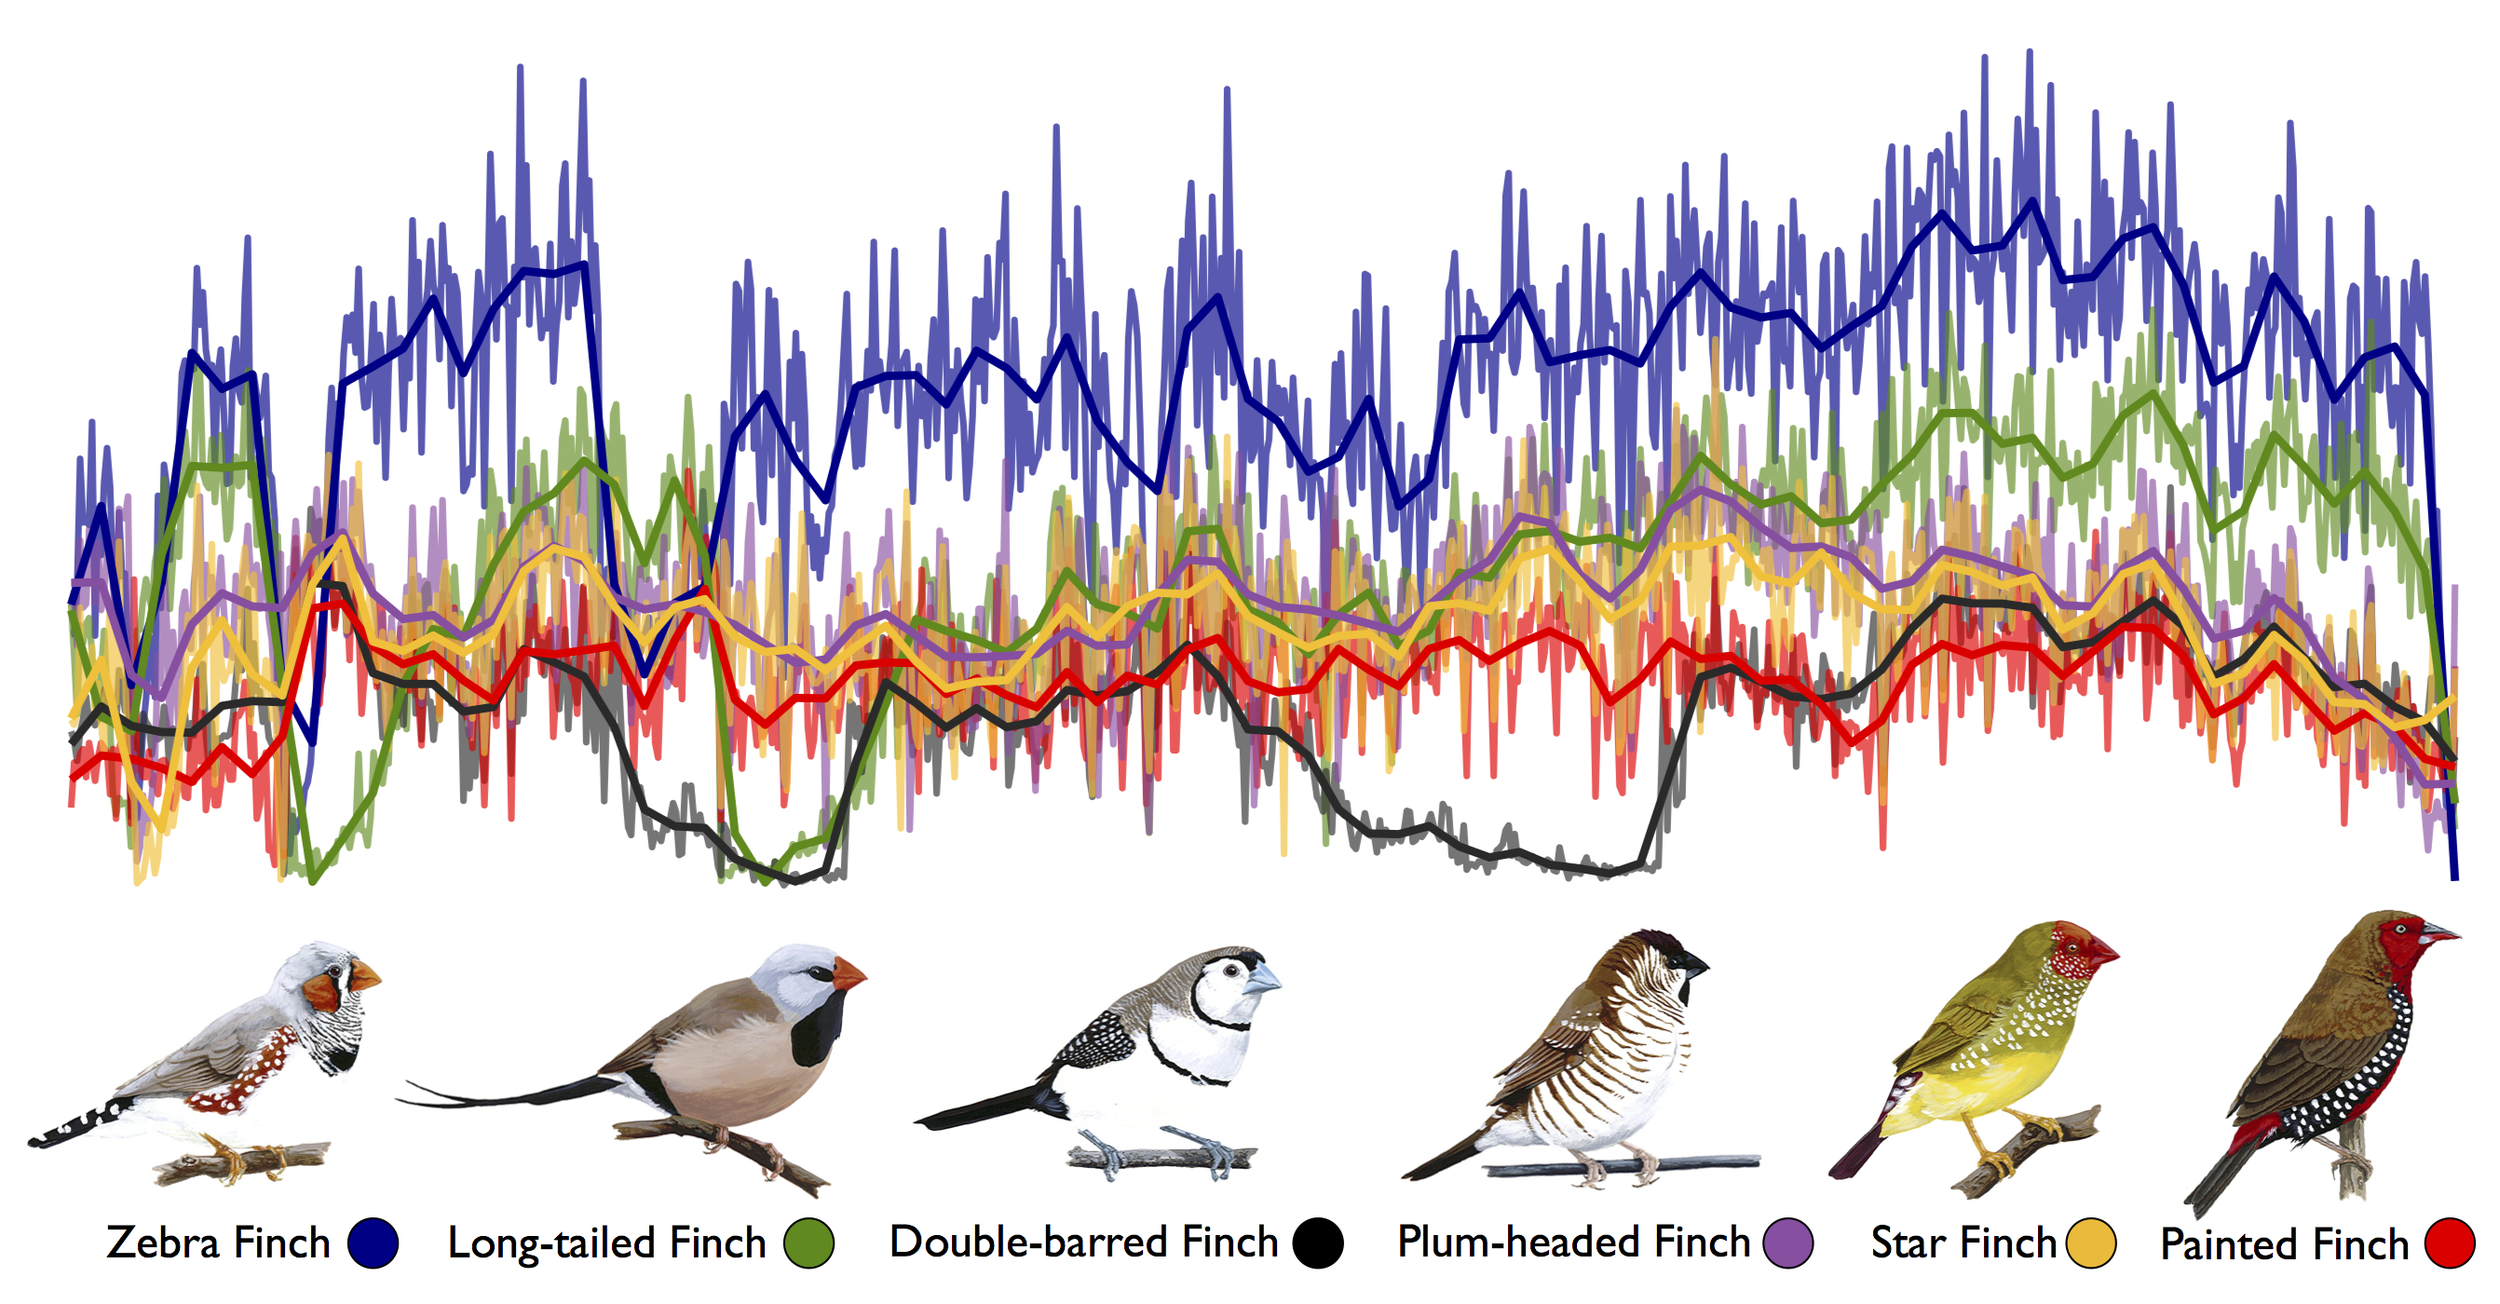 Nucleotide diversity in 50kb sliding windows along chromosome 7 for six species of Estrildid finches